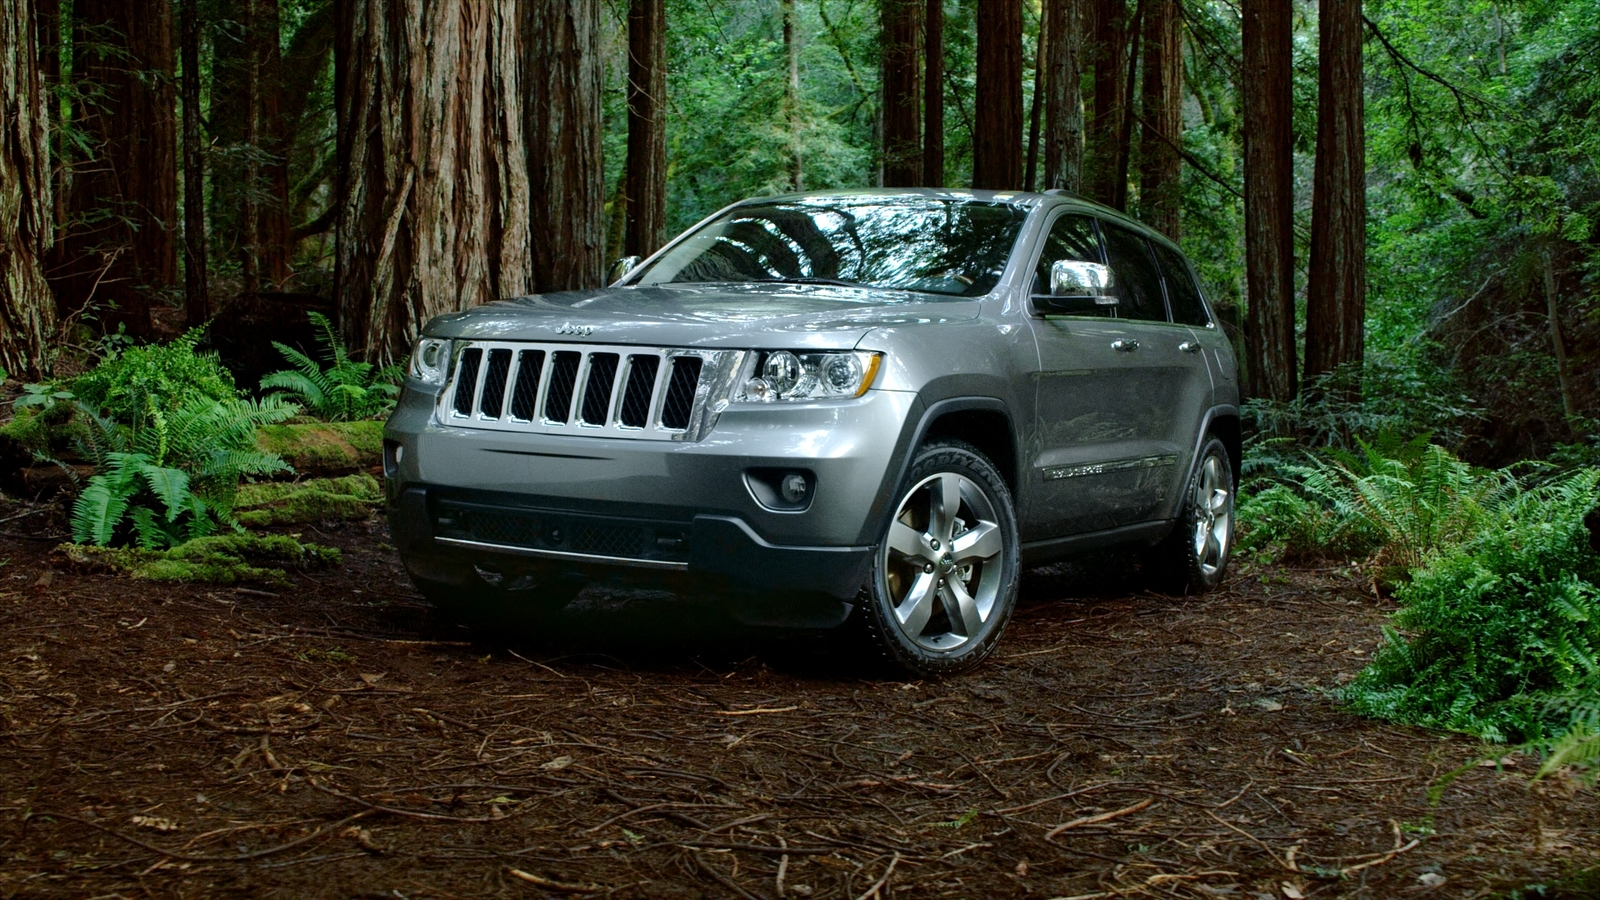 Chrysler Adds Stolen Vehicle Tracking System To Electronic